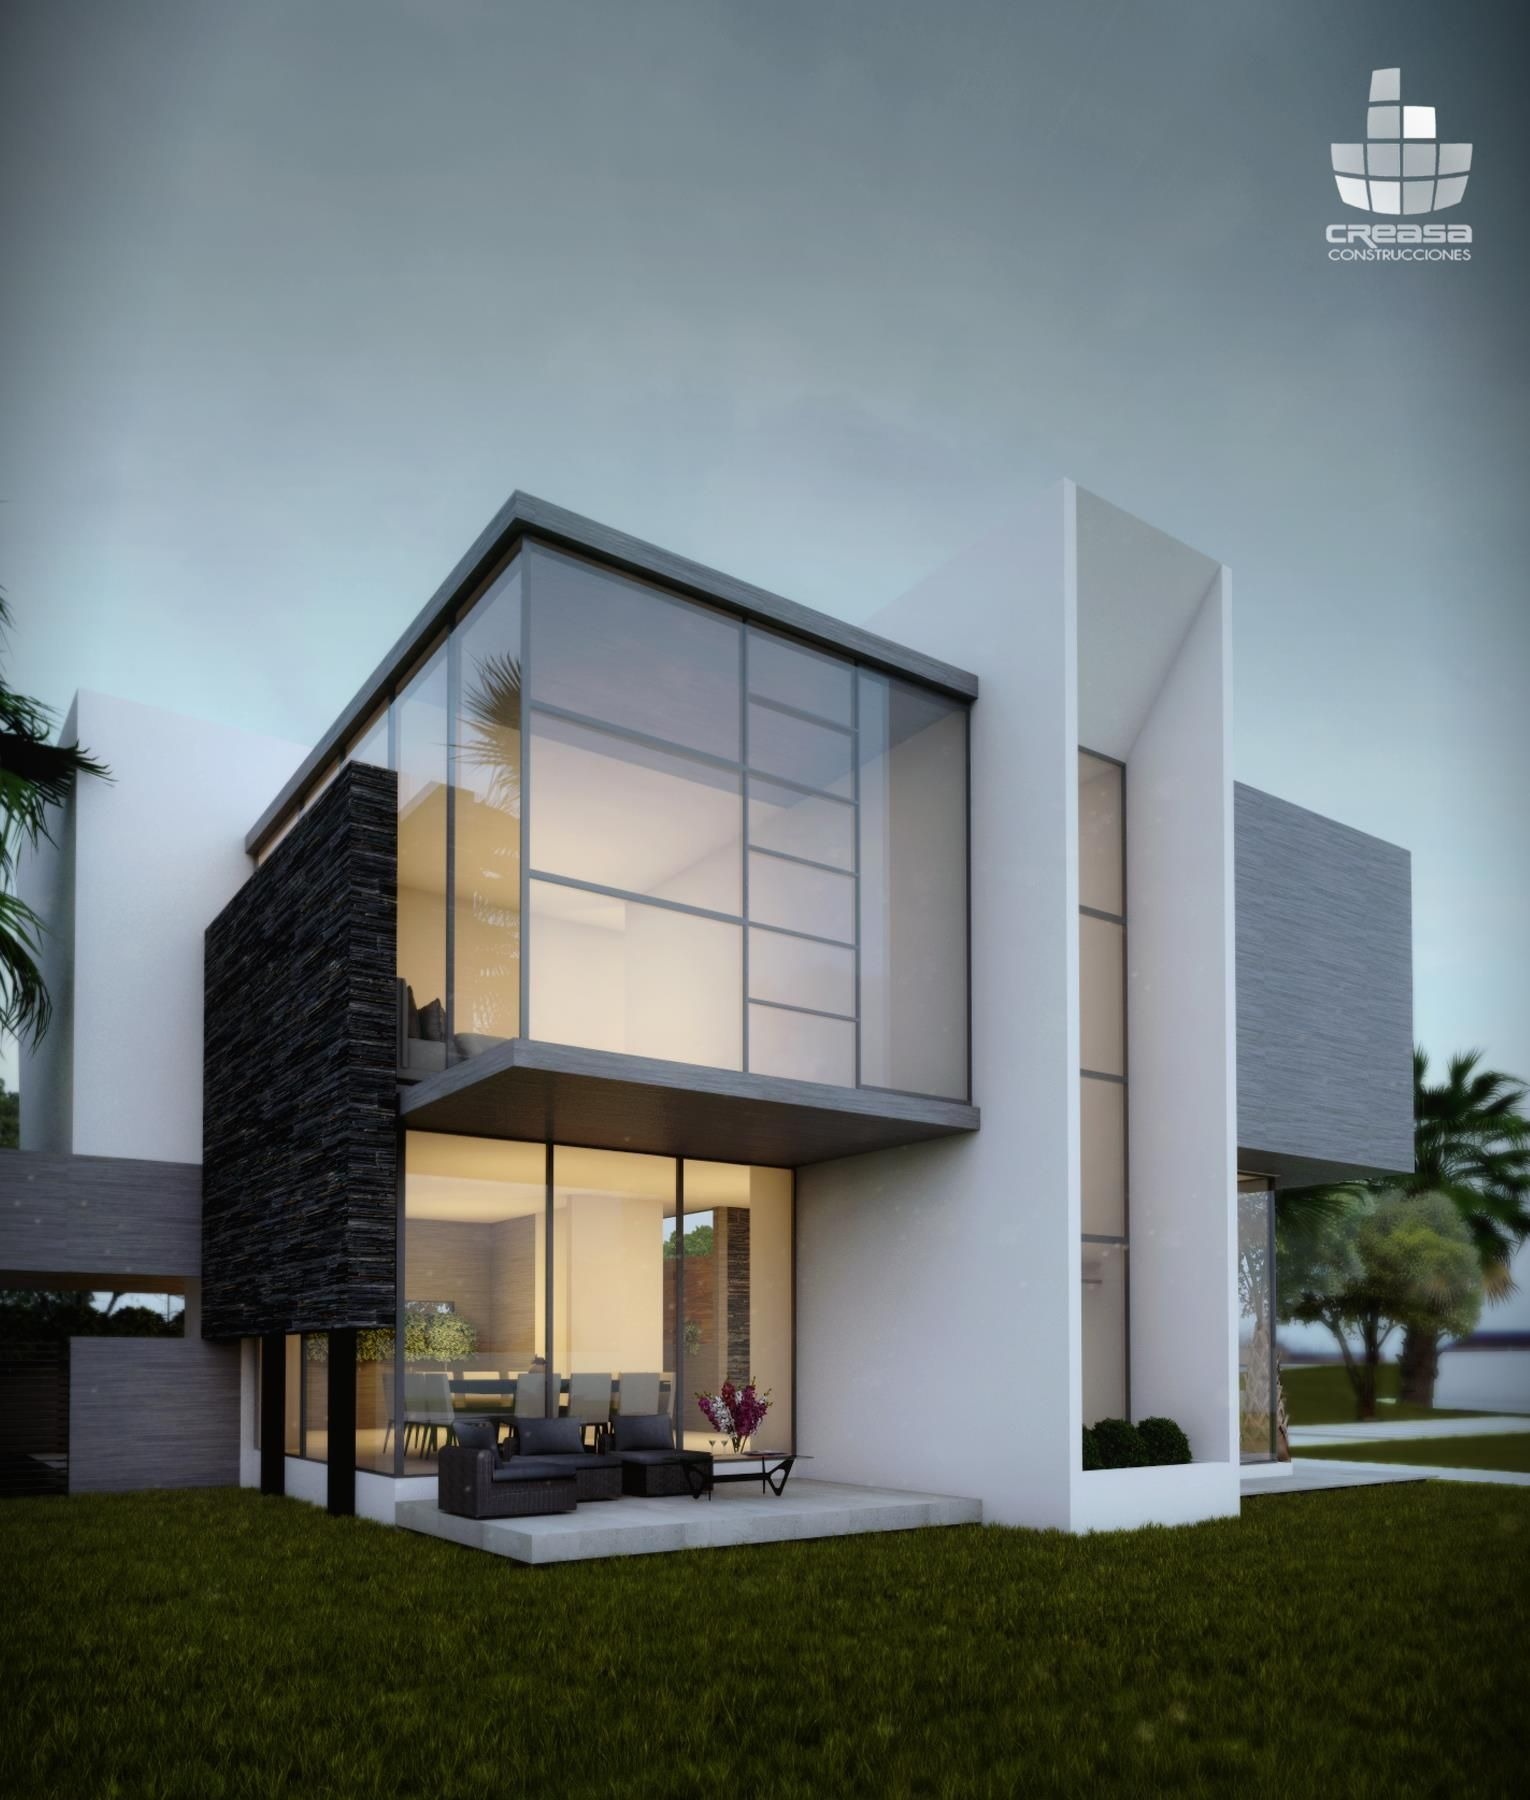 Creasa modern architecture pinterest villas house for Modern house designs images